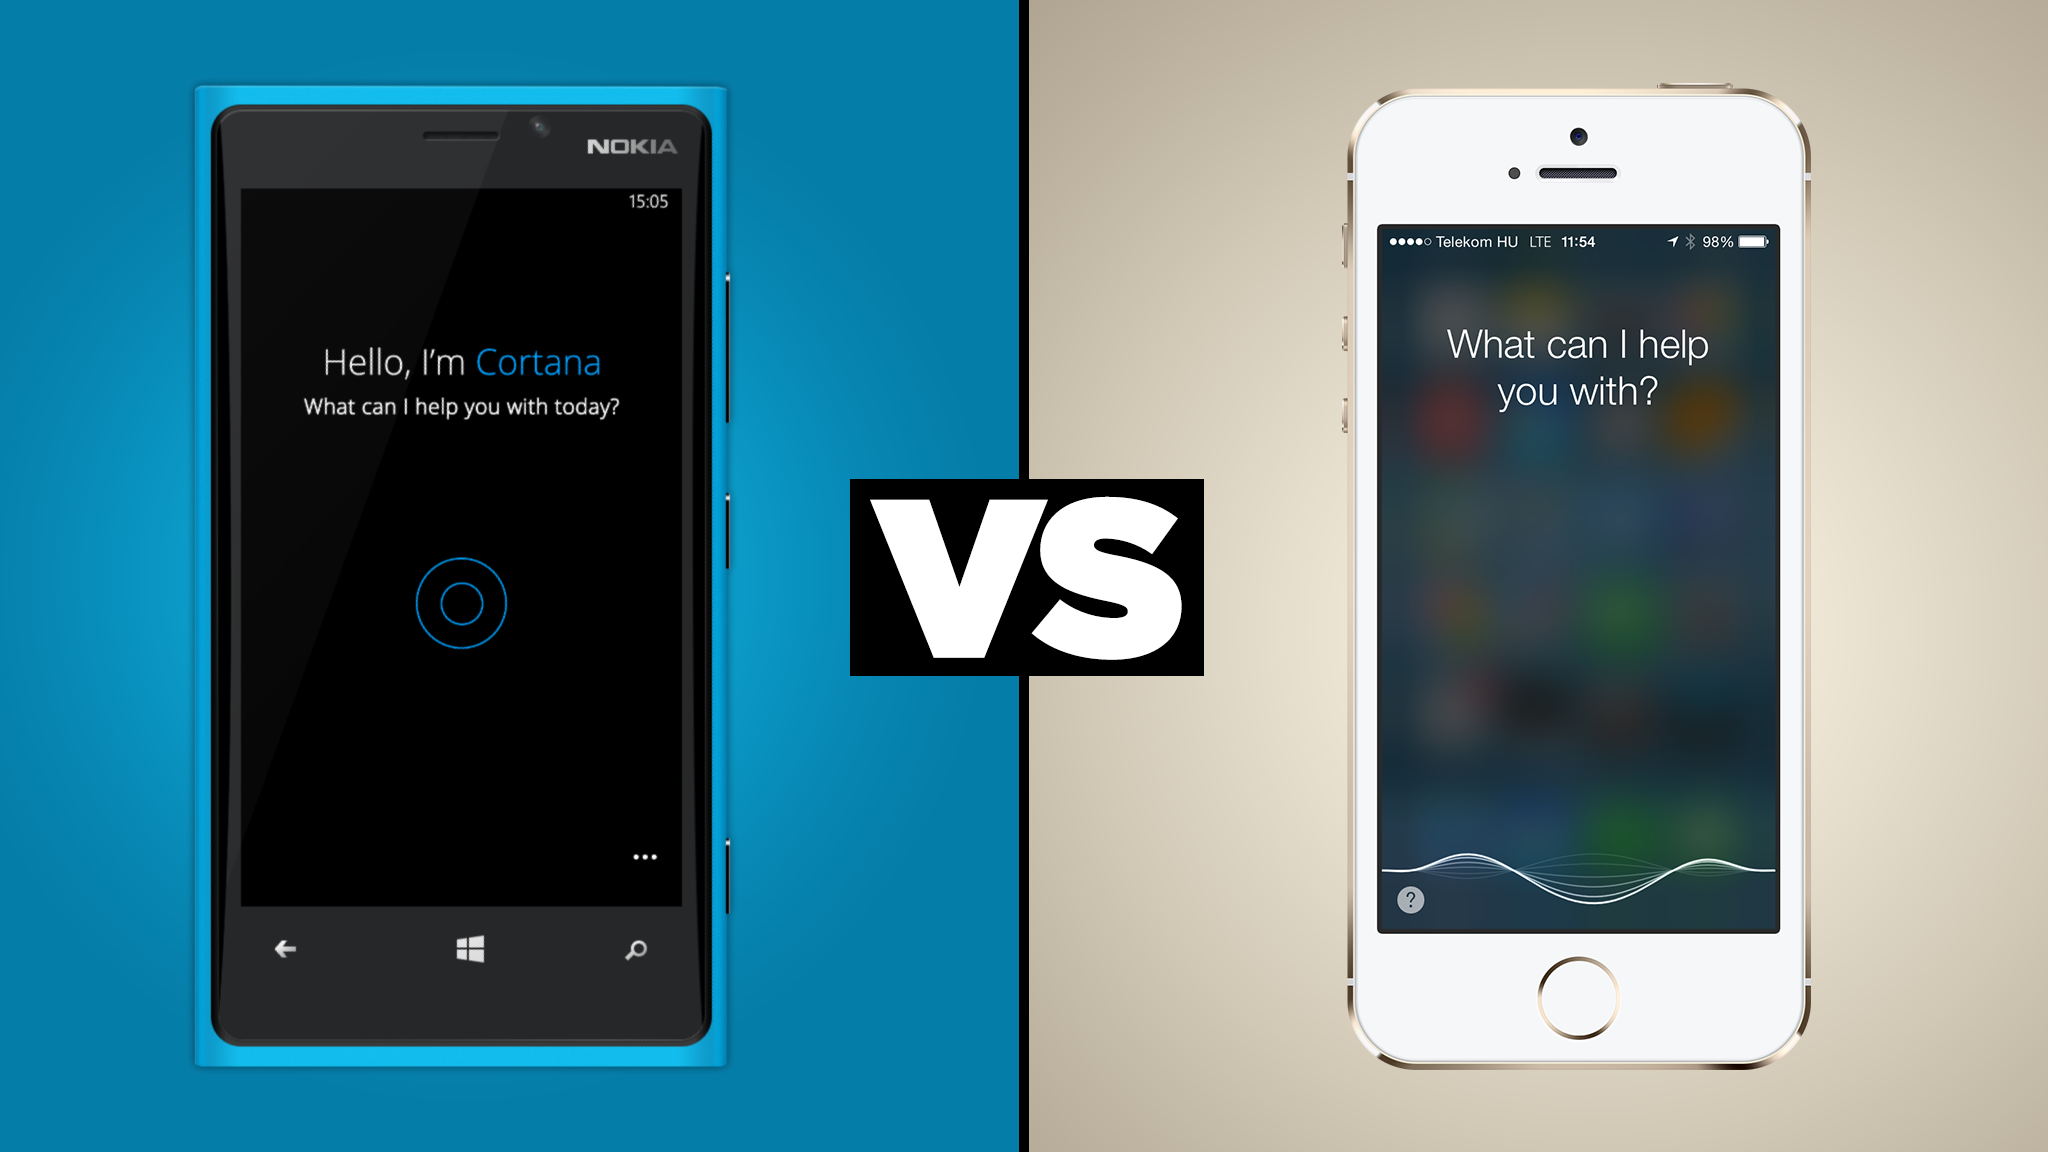 Apple's Siri vs Microsoft's Cortana on iPhone